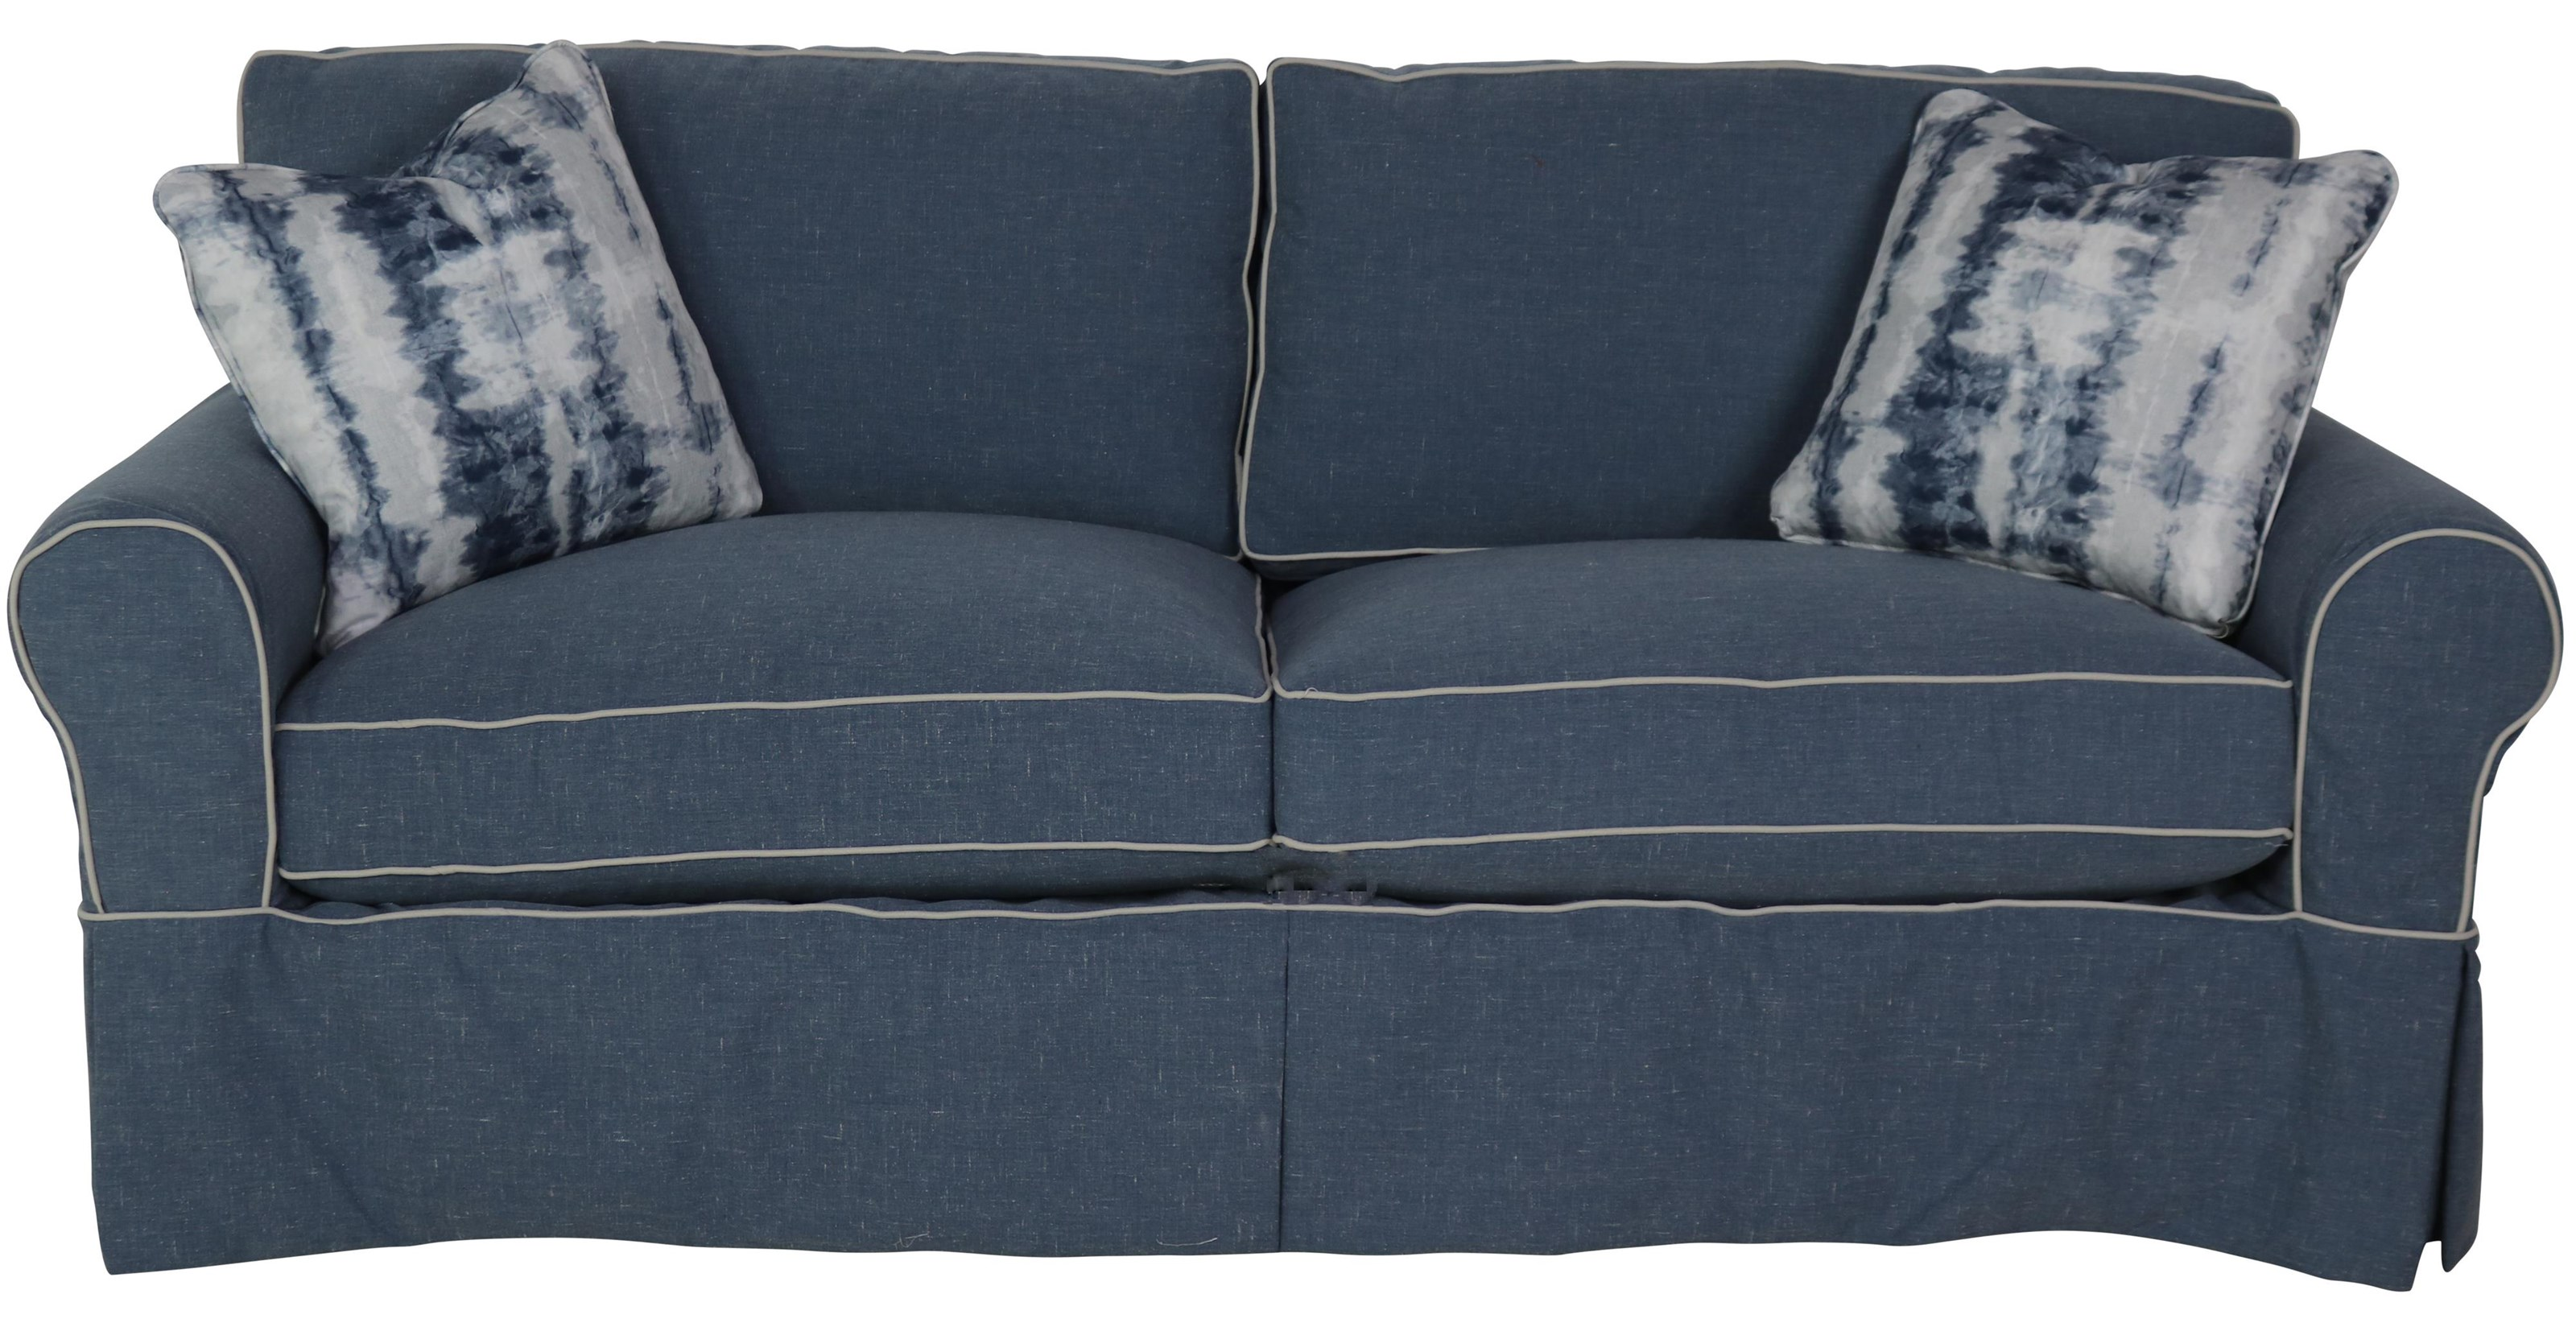 922850BD Sofa by Cozi Life Upholstery at Sprintz Furniture